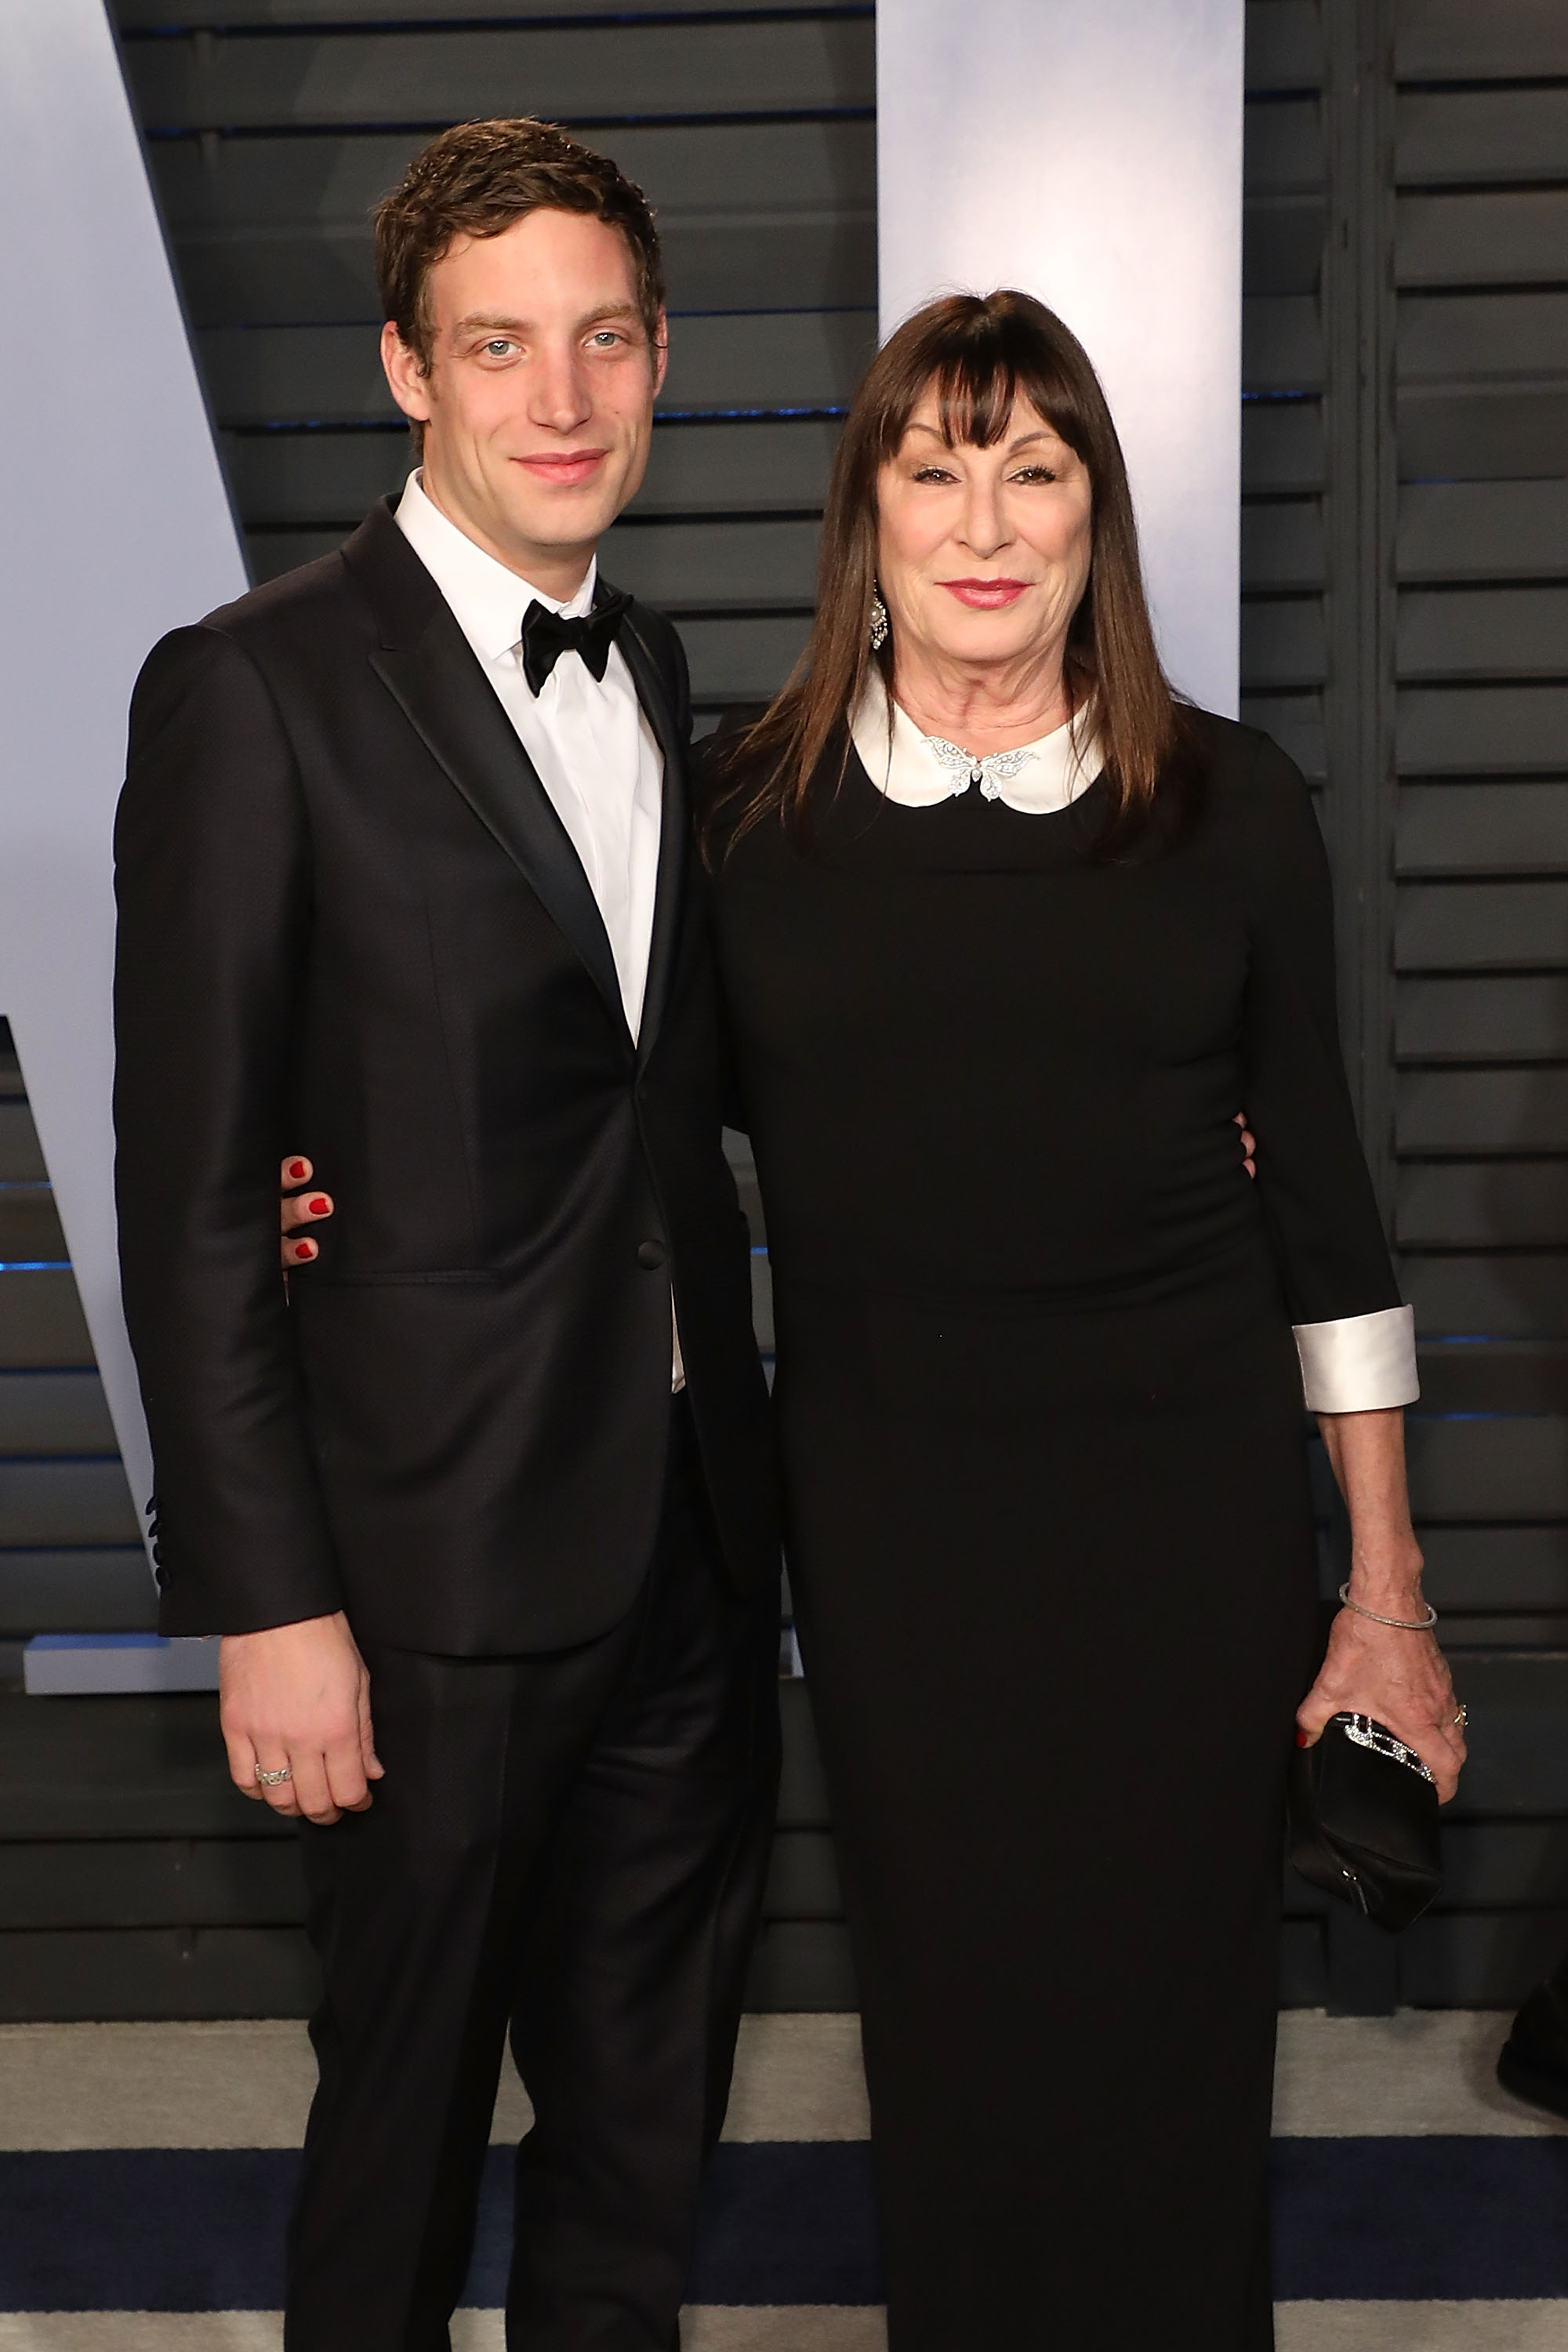 Anjelica Huston Dressed Like Wednesday Addams At A 2018 ...